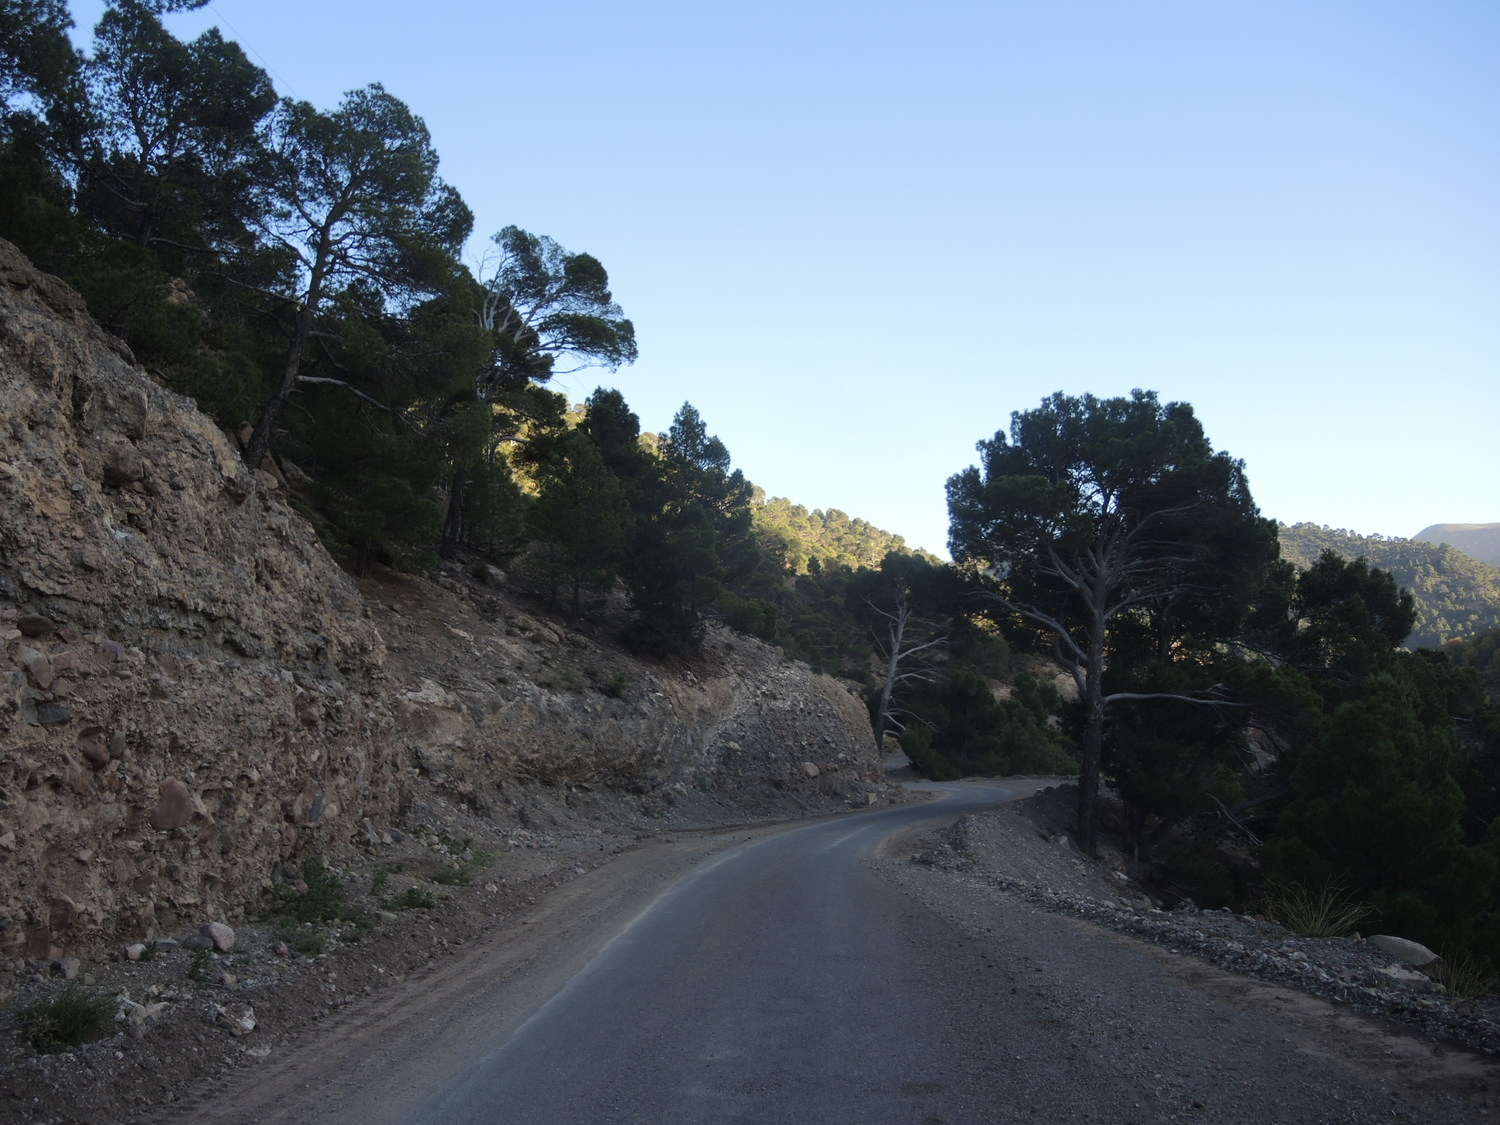 R307 road in Atlas Mountains